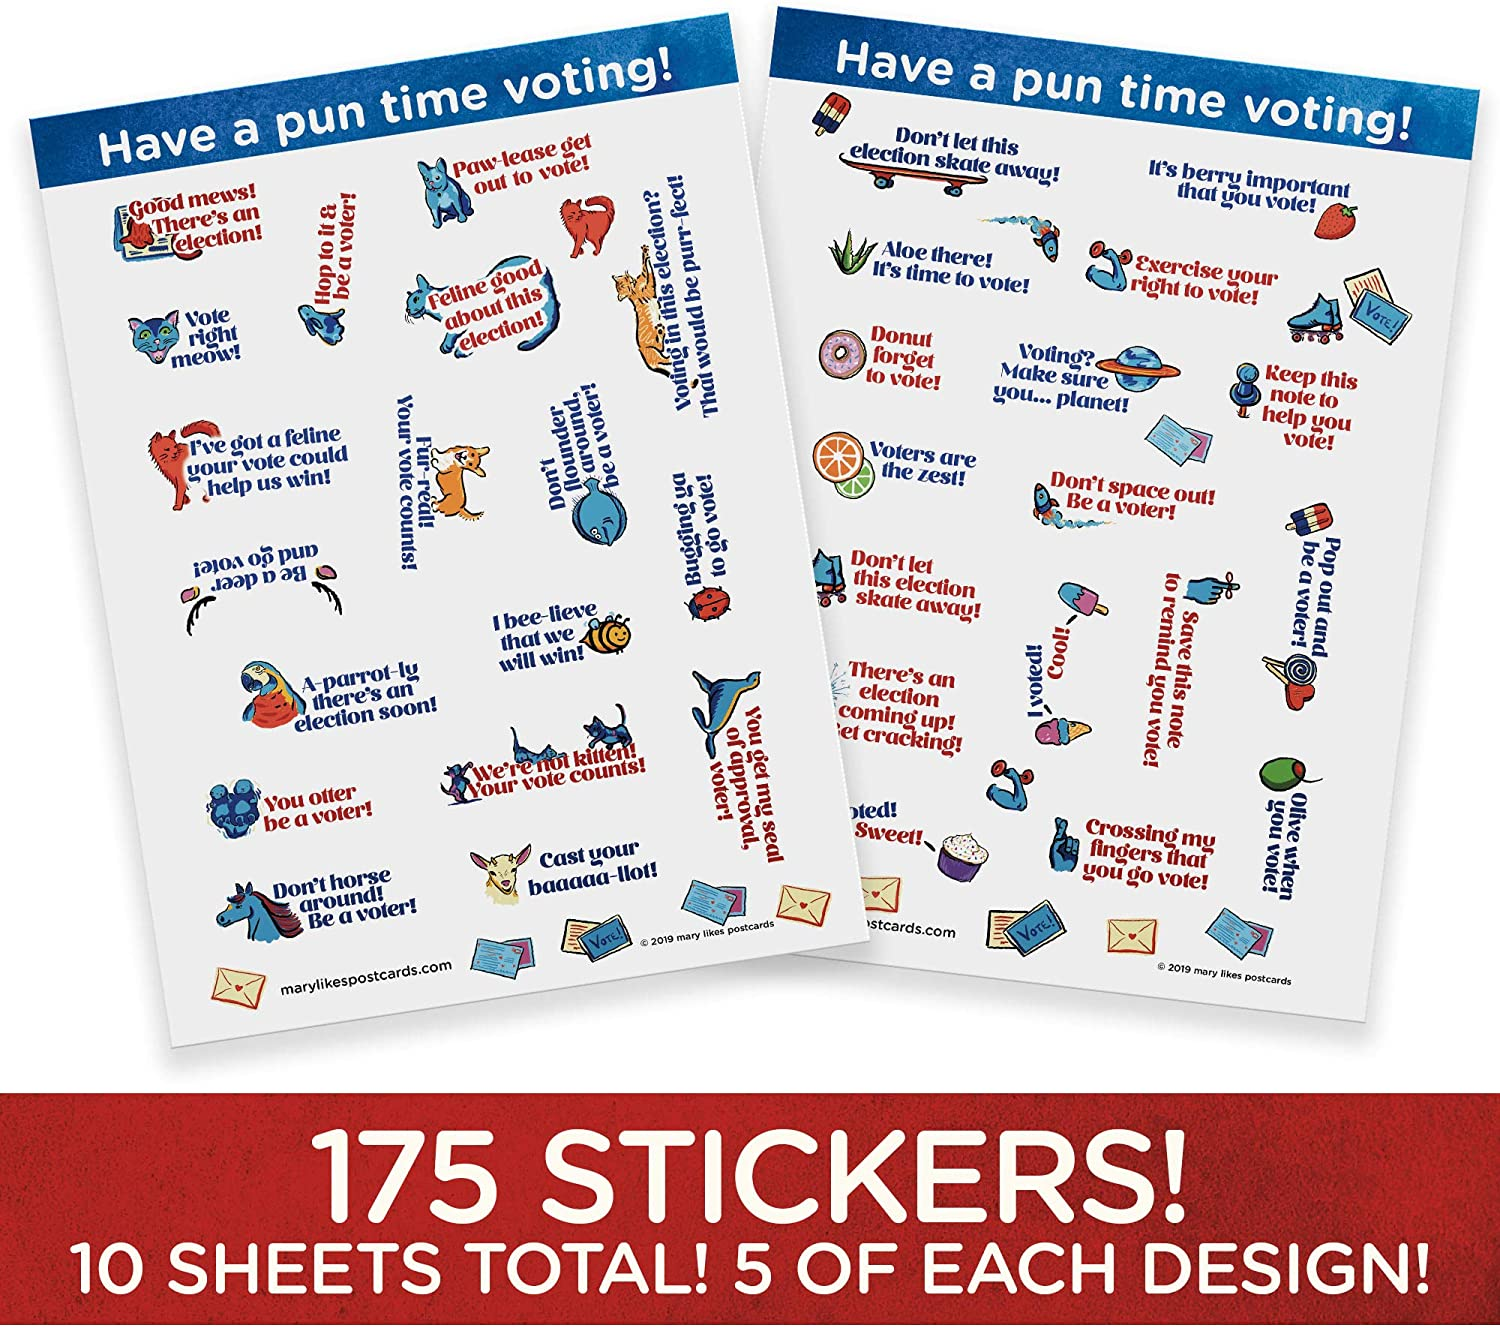 10 Sheets of Political Stickers with Lots of Election Puns Writing to Your reps or Getting Out The Vote Have a Pun time Voting Perfect for Your Postcards